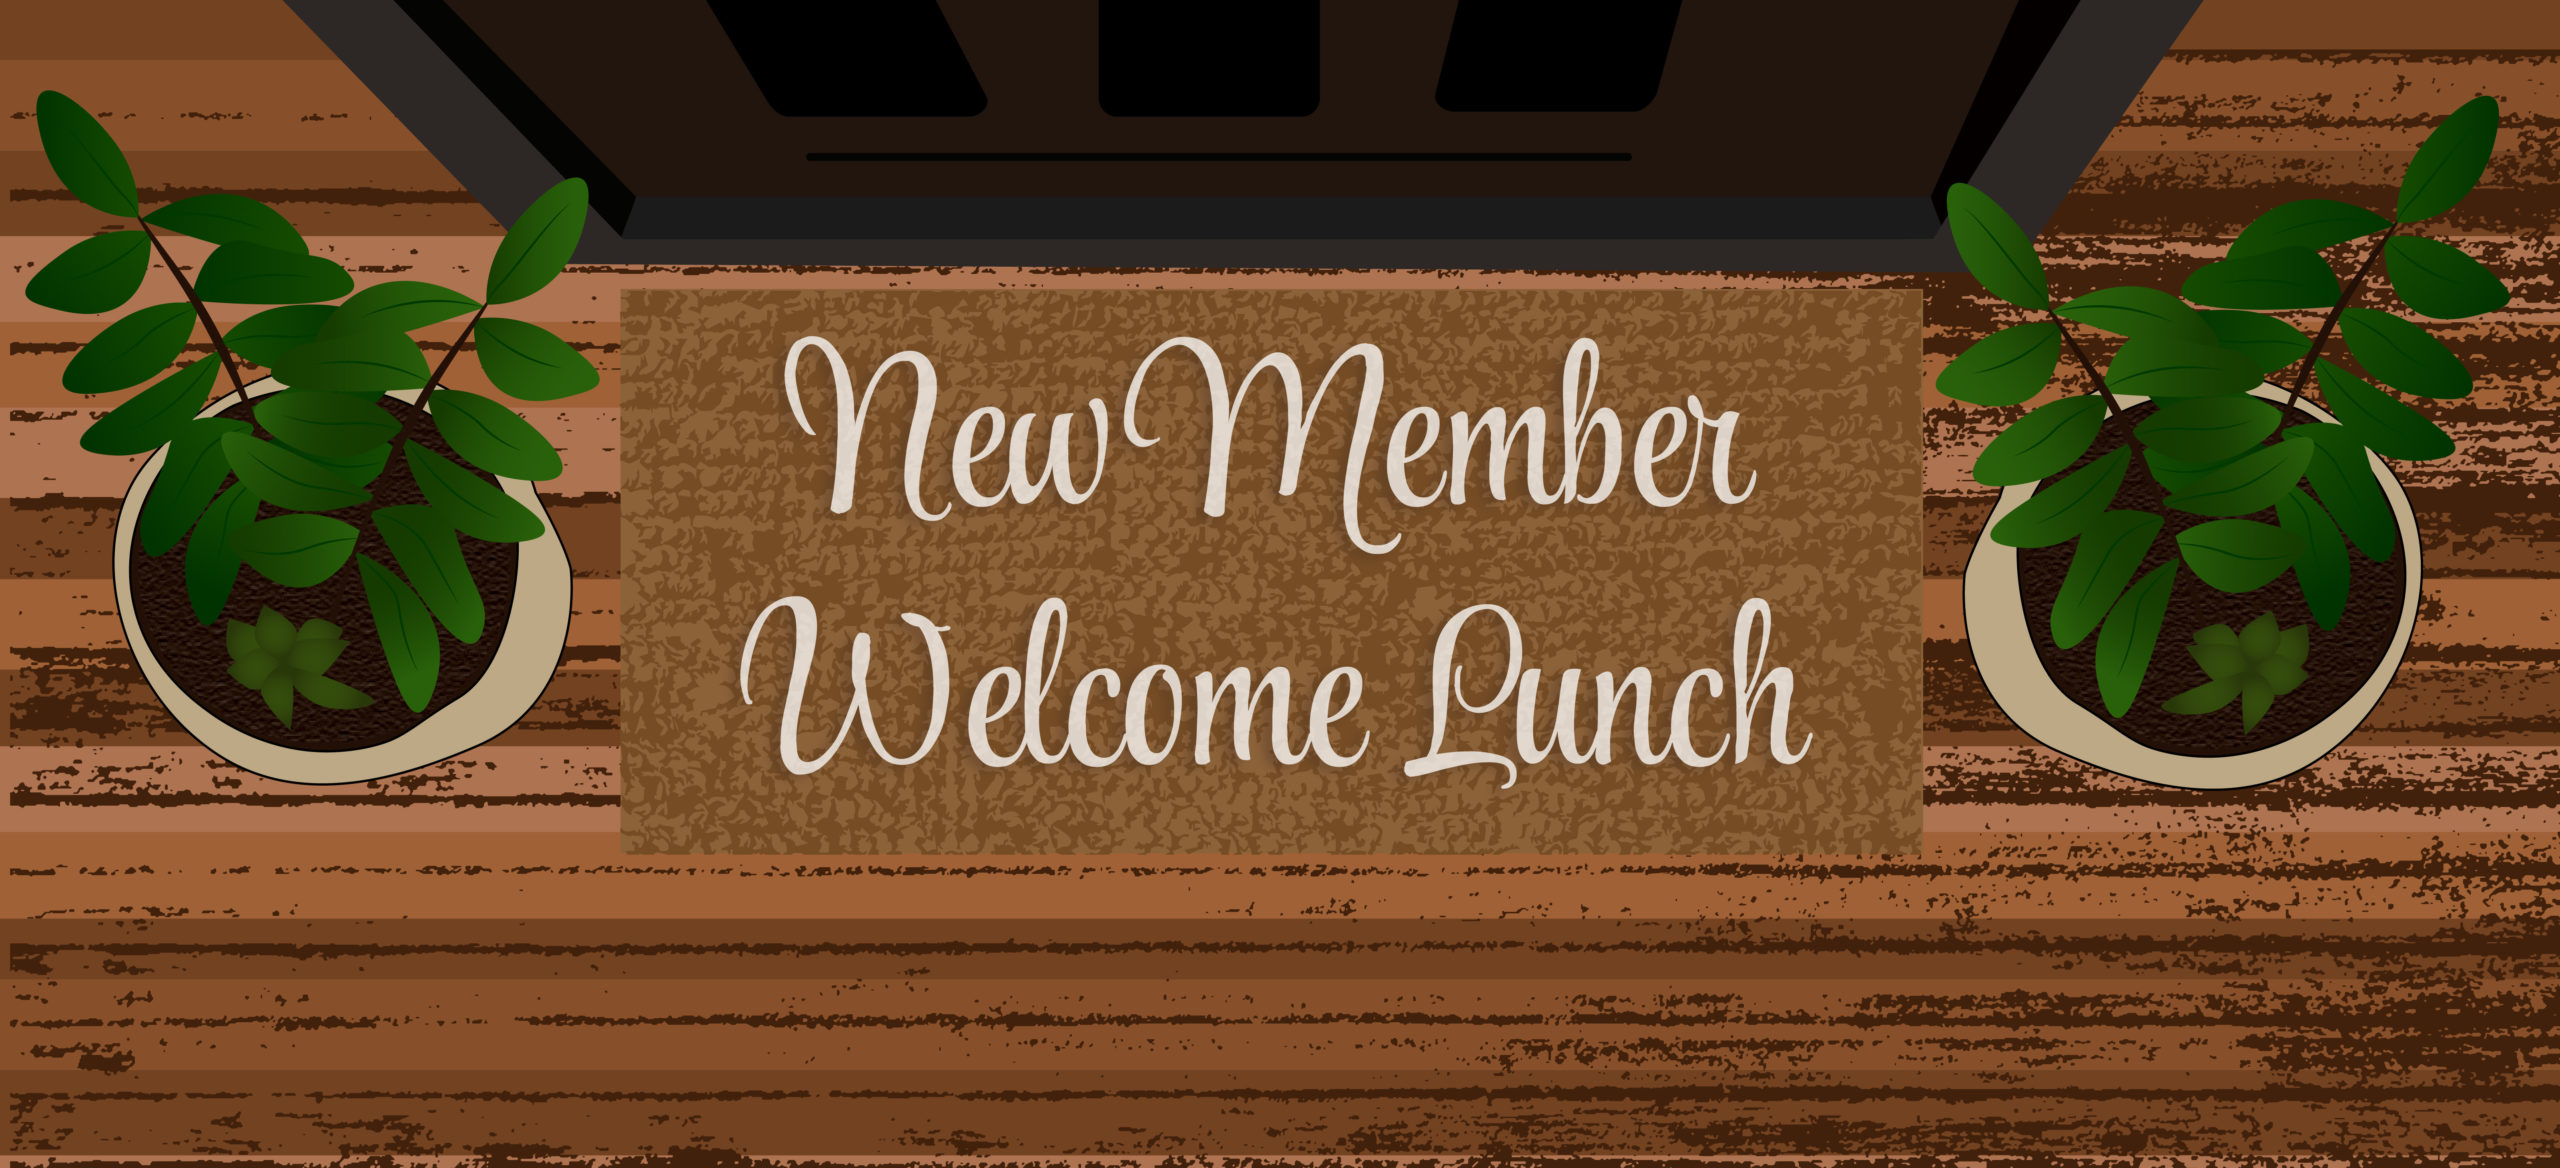 New Member Welcome Lunch